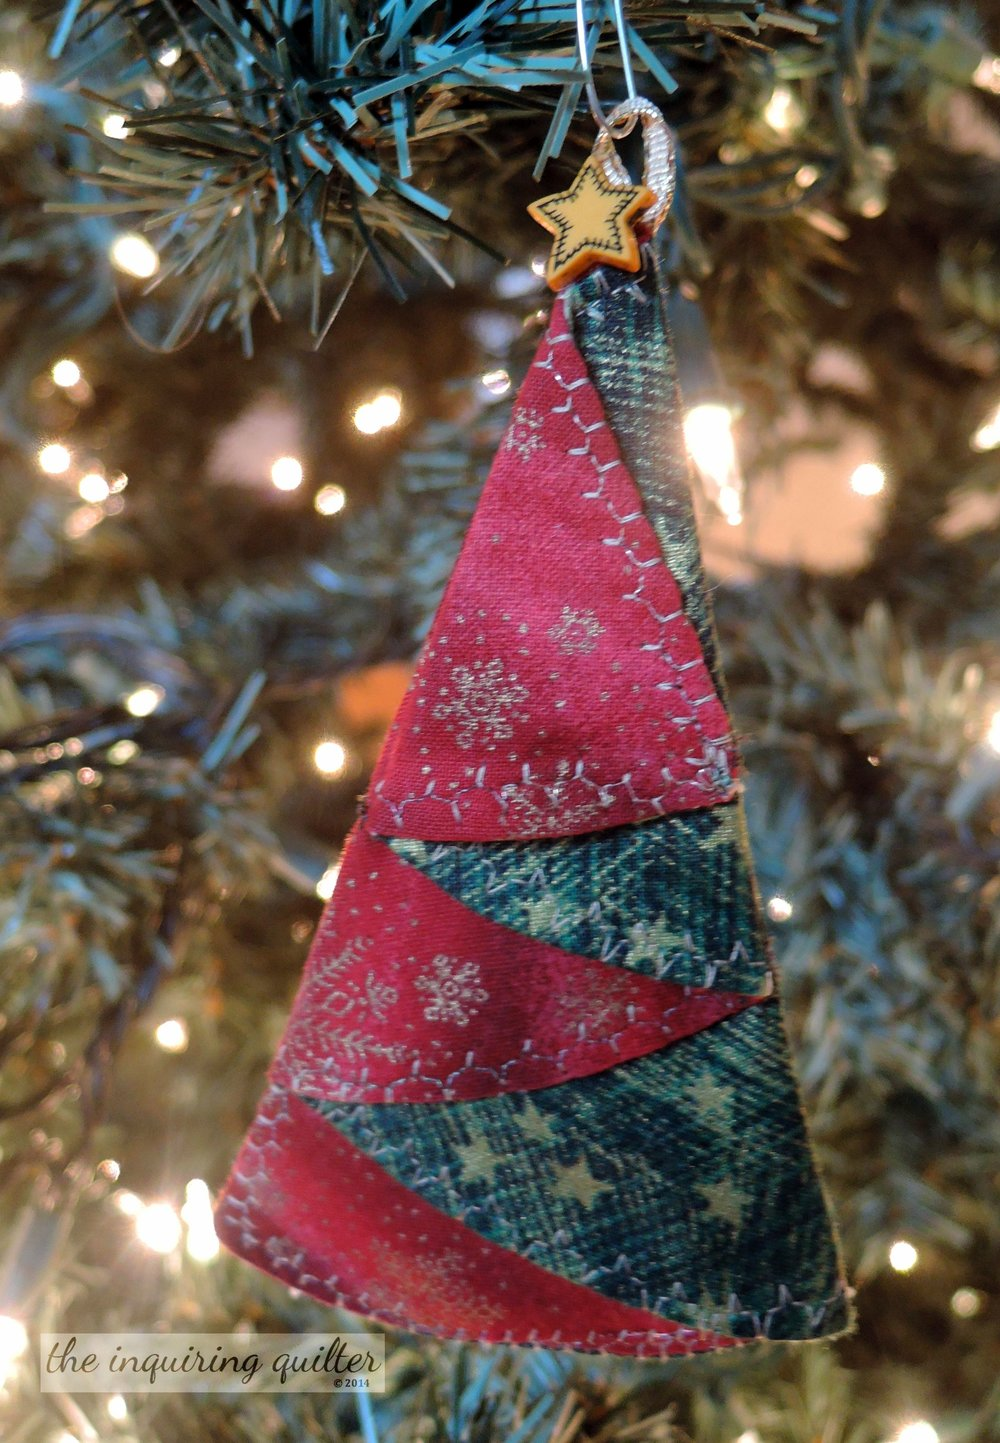 I shared how to make this beautiful folded Christmas tree ornament during my 12 Days of Handmade Christmas Gifts